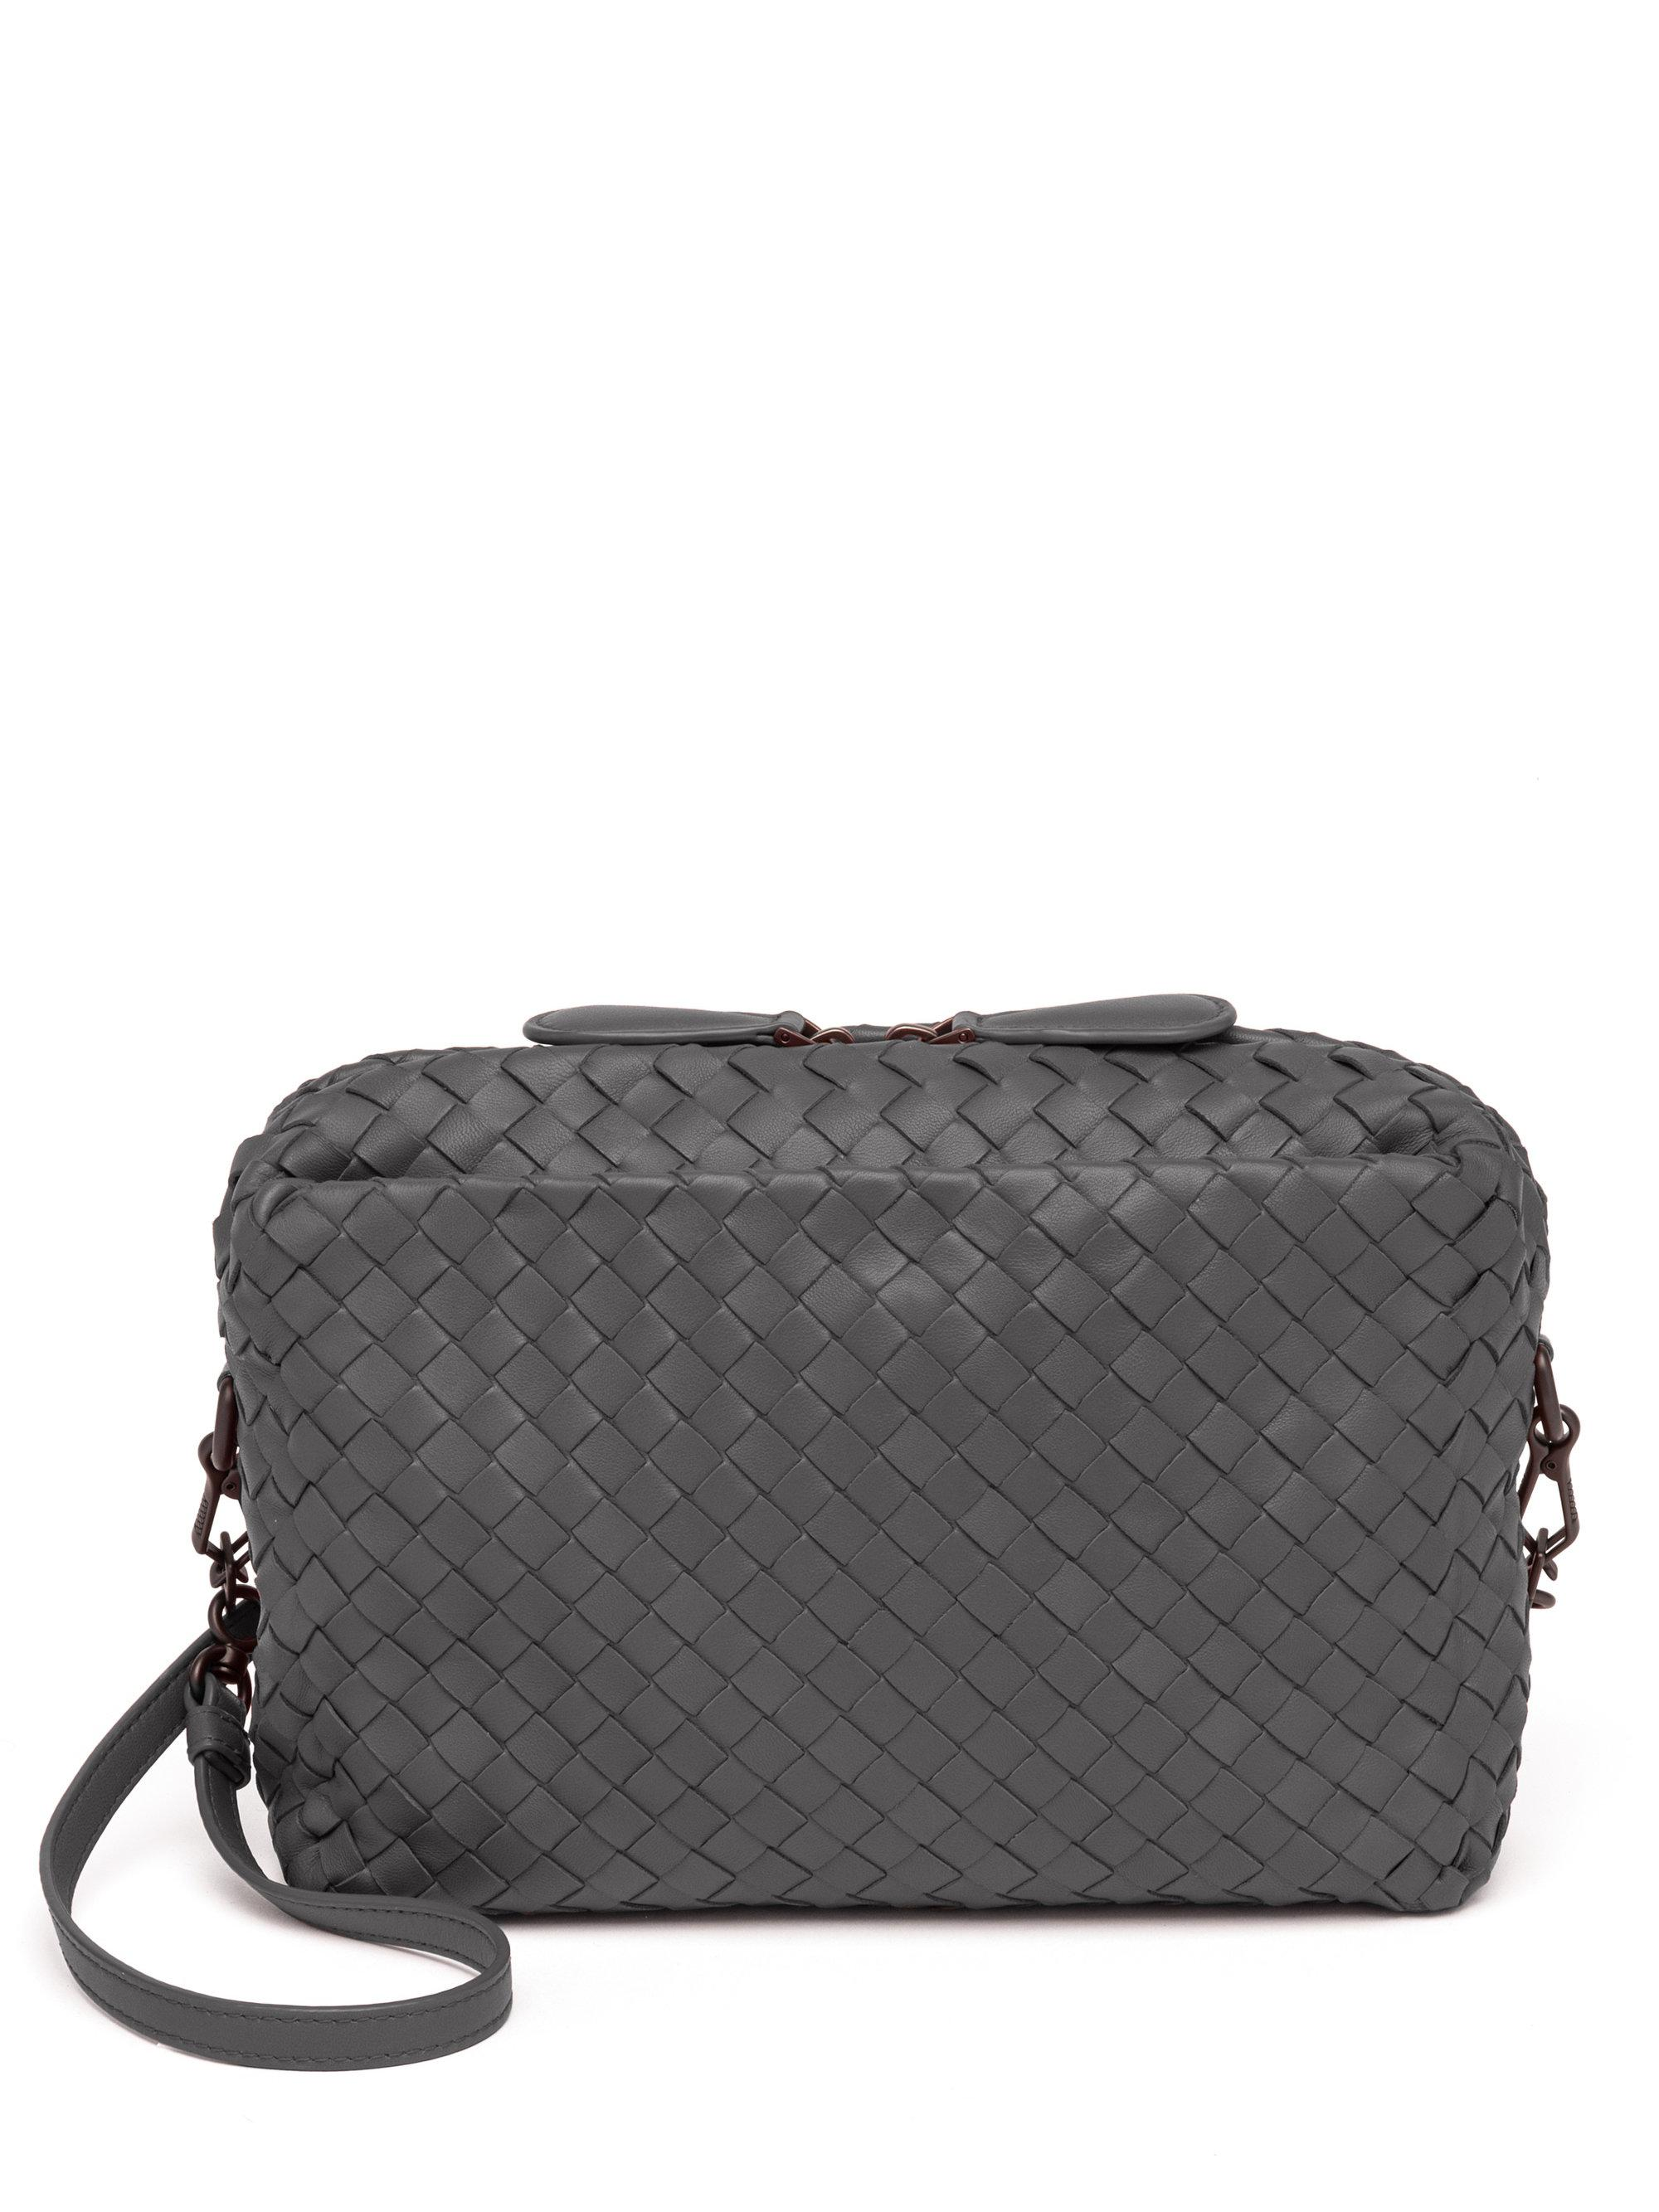 3a3194f2c650 Bottega Veneta Pillow Intrecciato Leather Crossbody Bag in Gray - Lyst